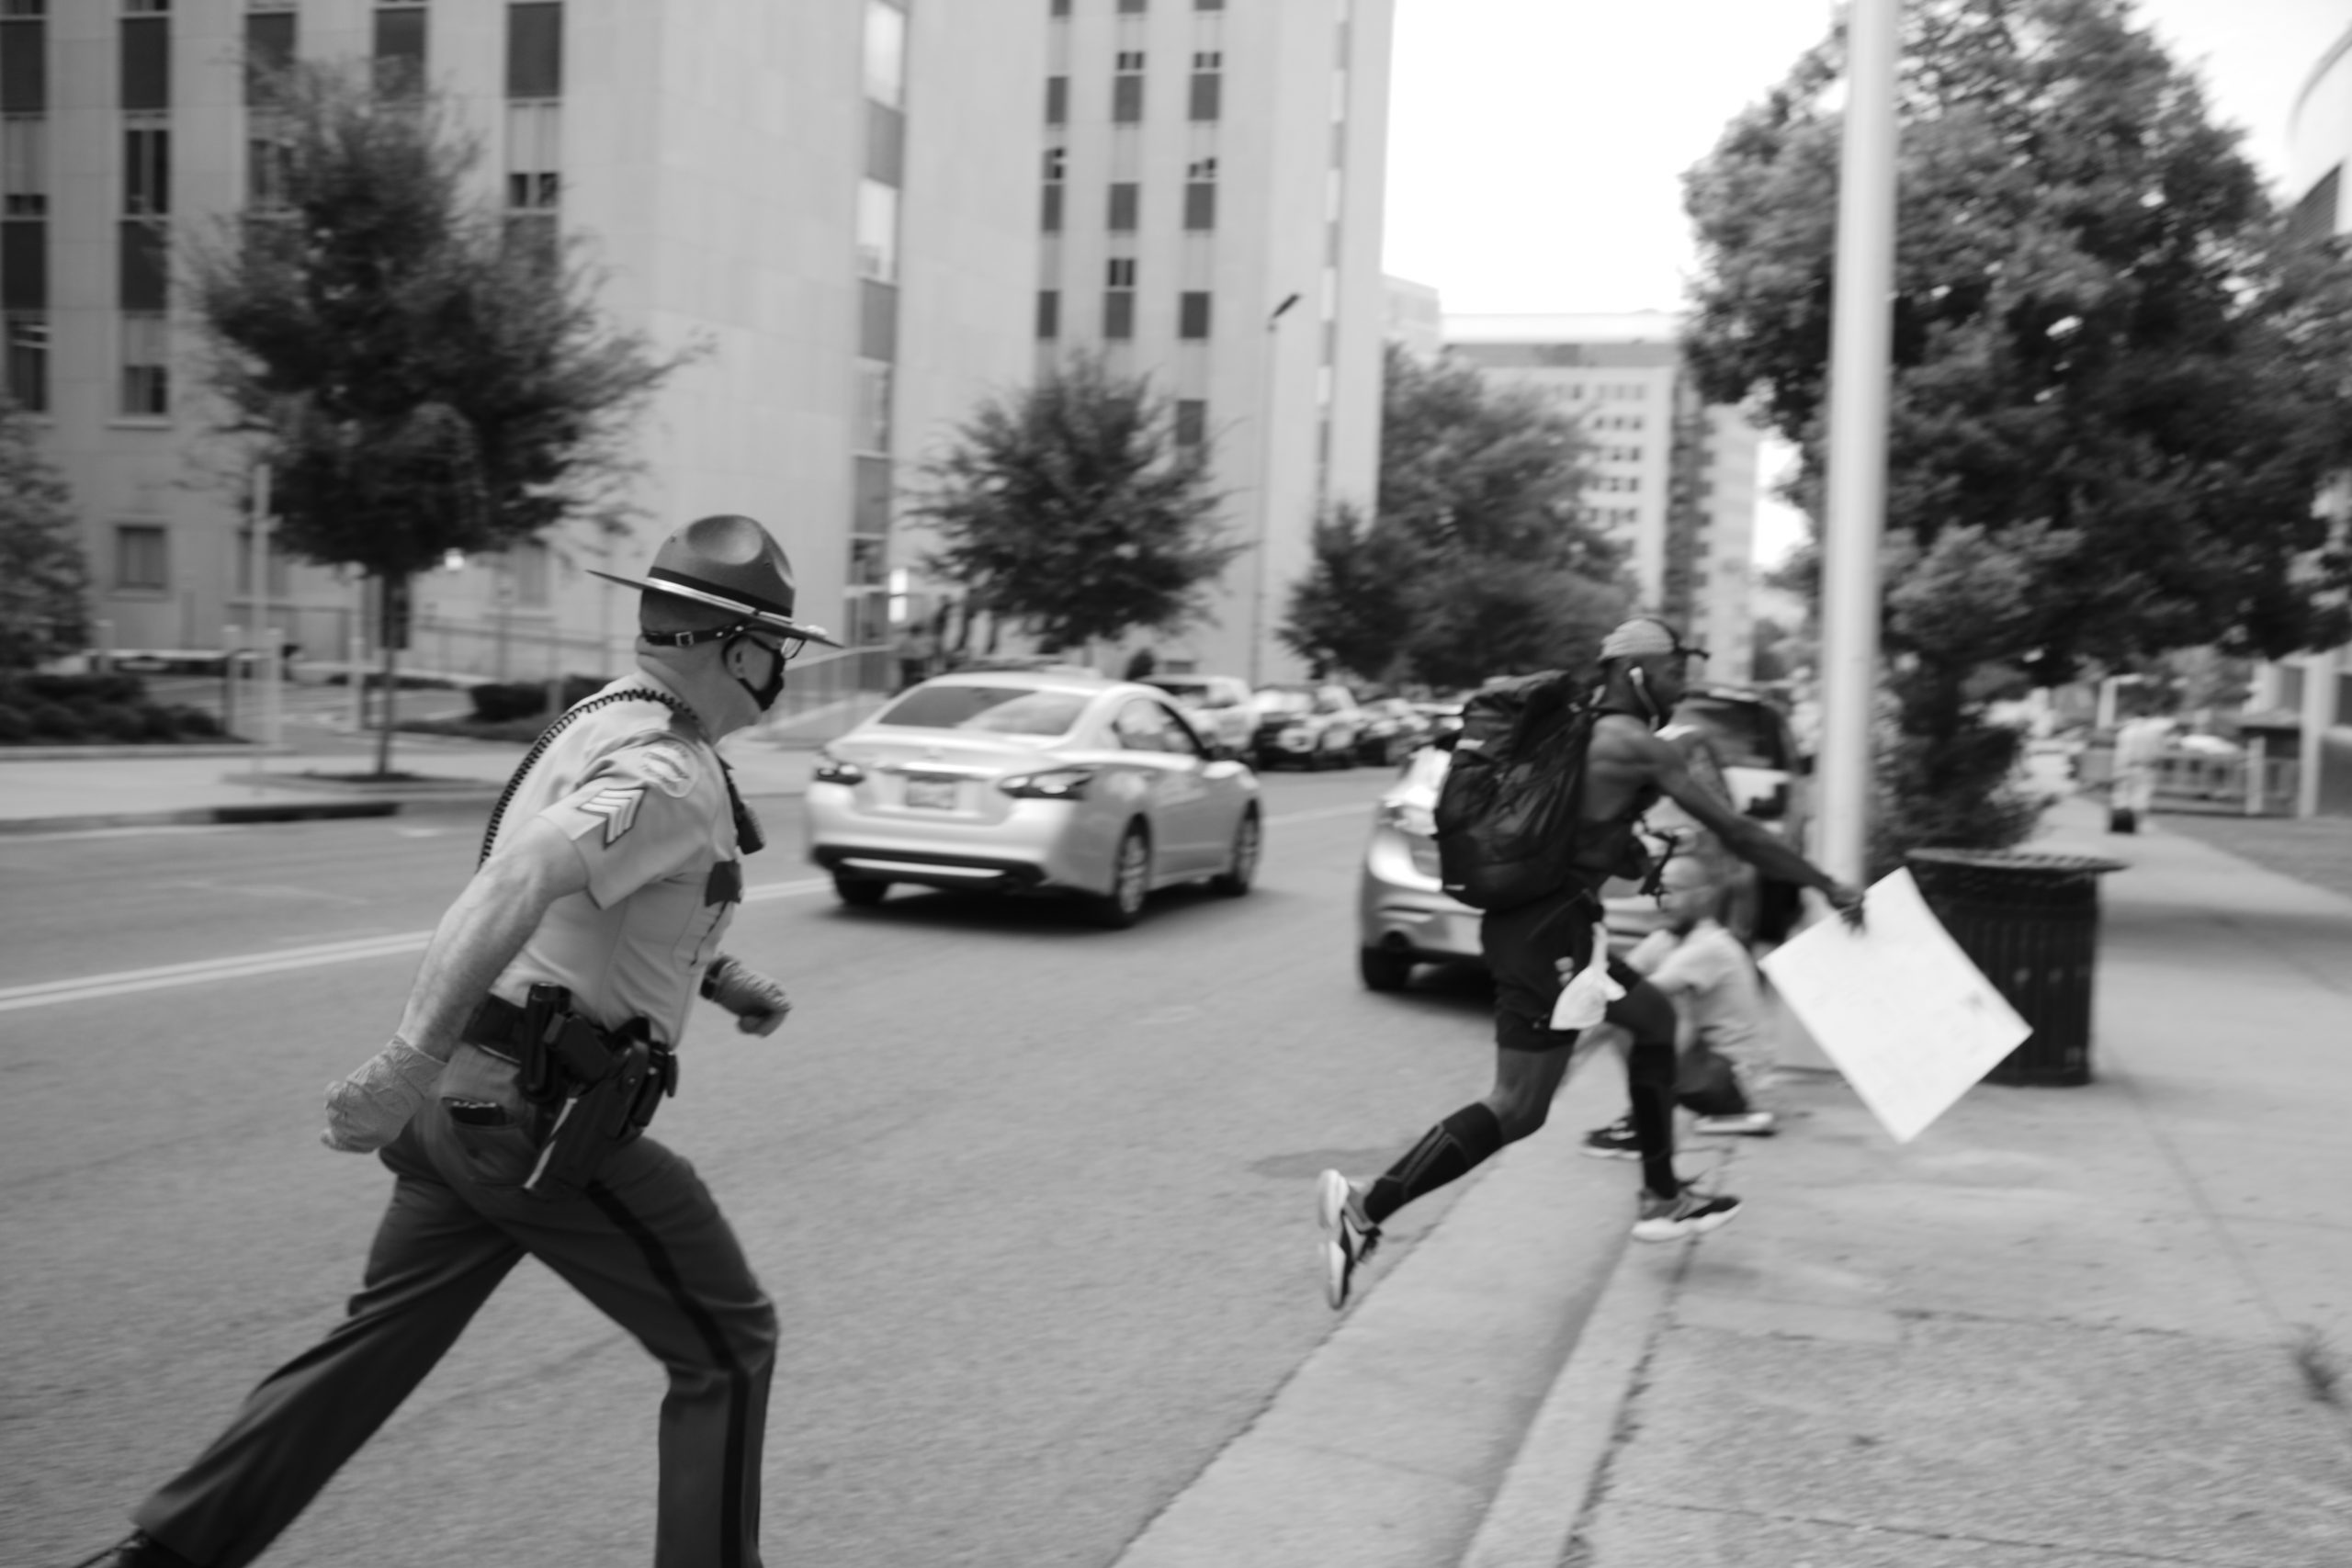 A Tennessee state trooper chases a protester holding a sign on 5th Avenue, N. in Nashville, across from the Cordell Hull Office Building. (Photo: Ray Di Pietro)